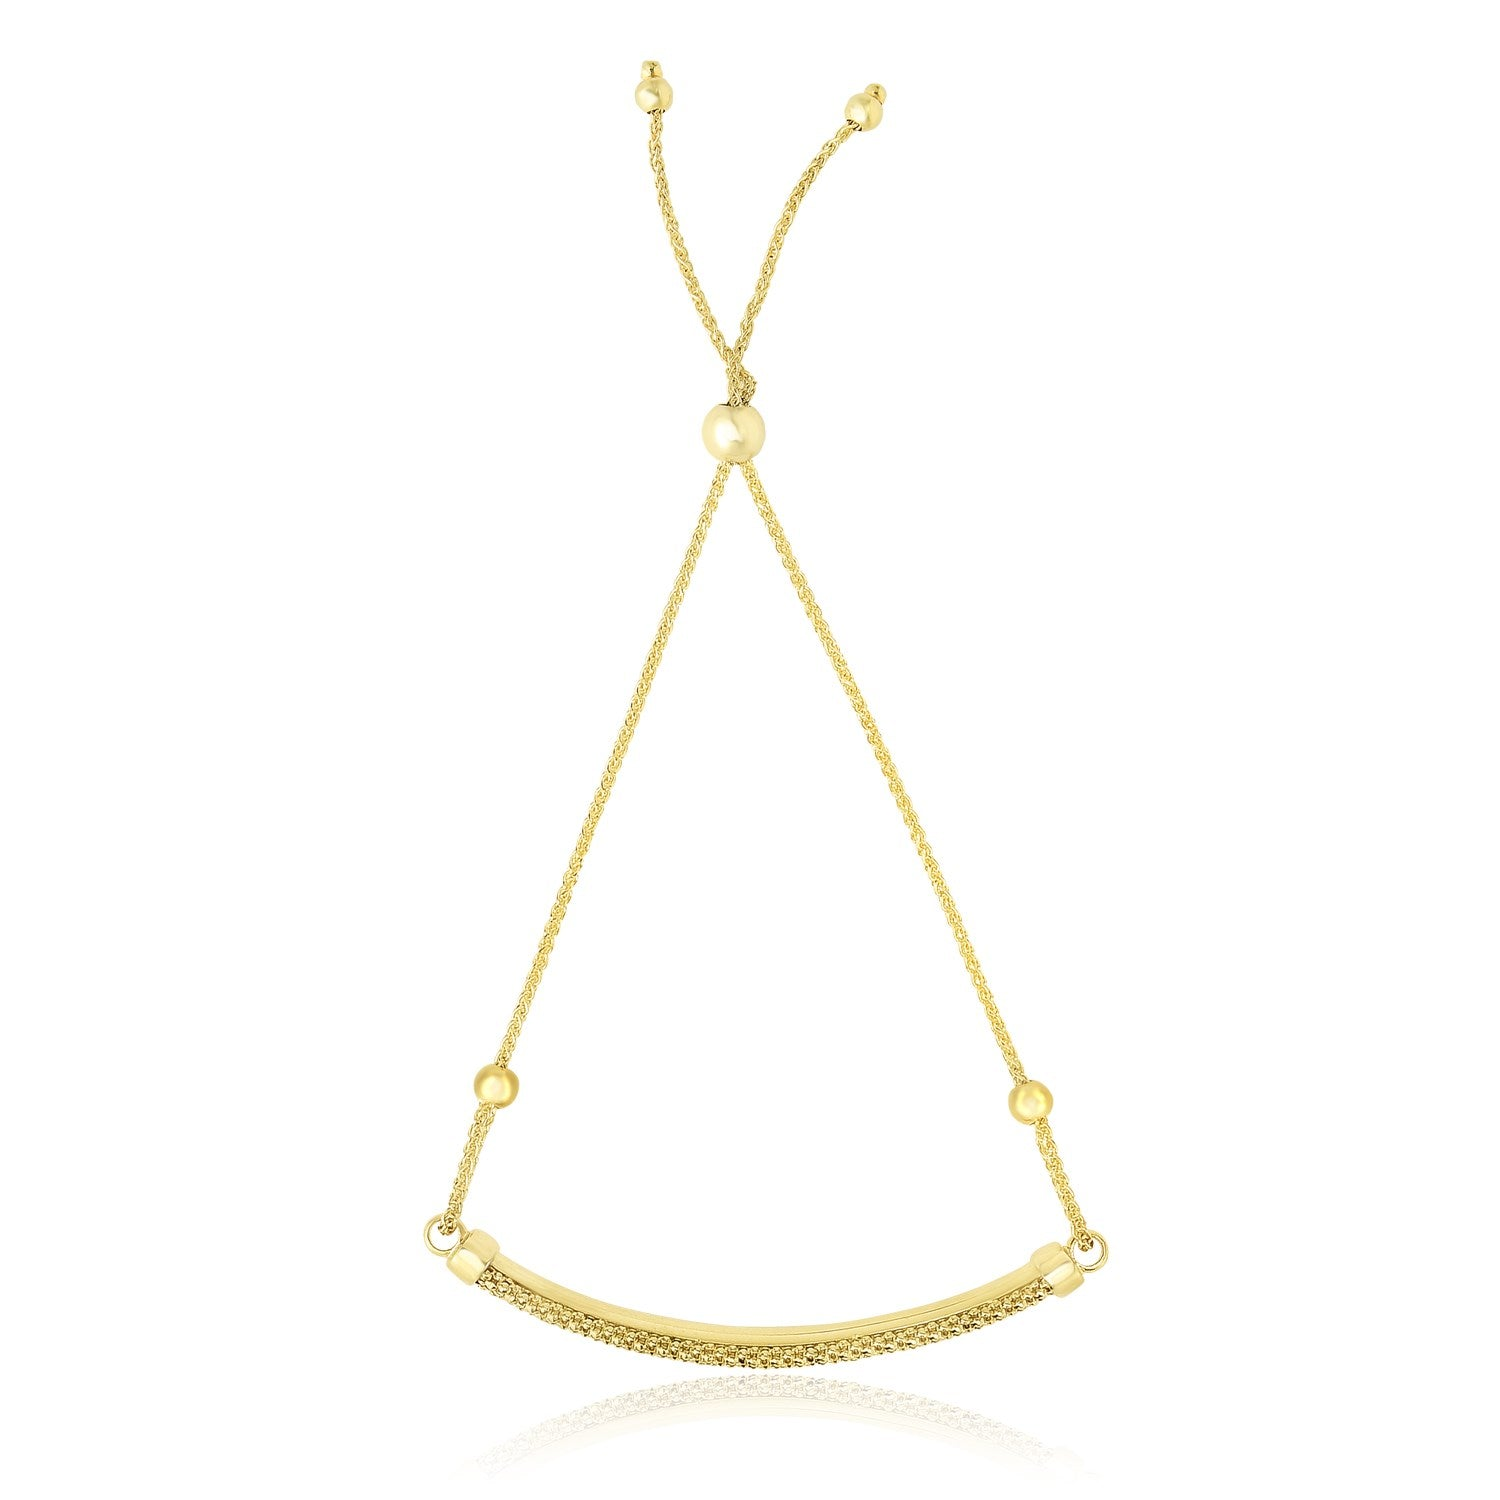 14K Yellow Gold Textured Bar Adjustable Lariat Bracelet